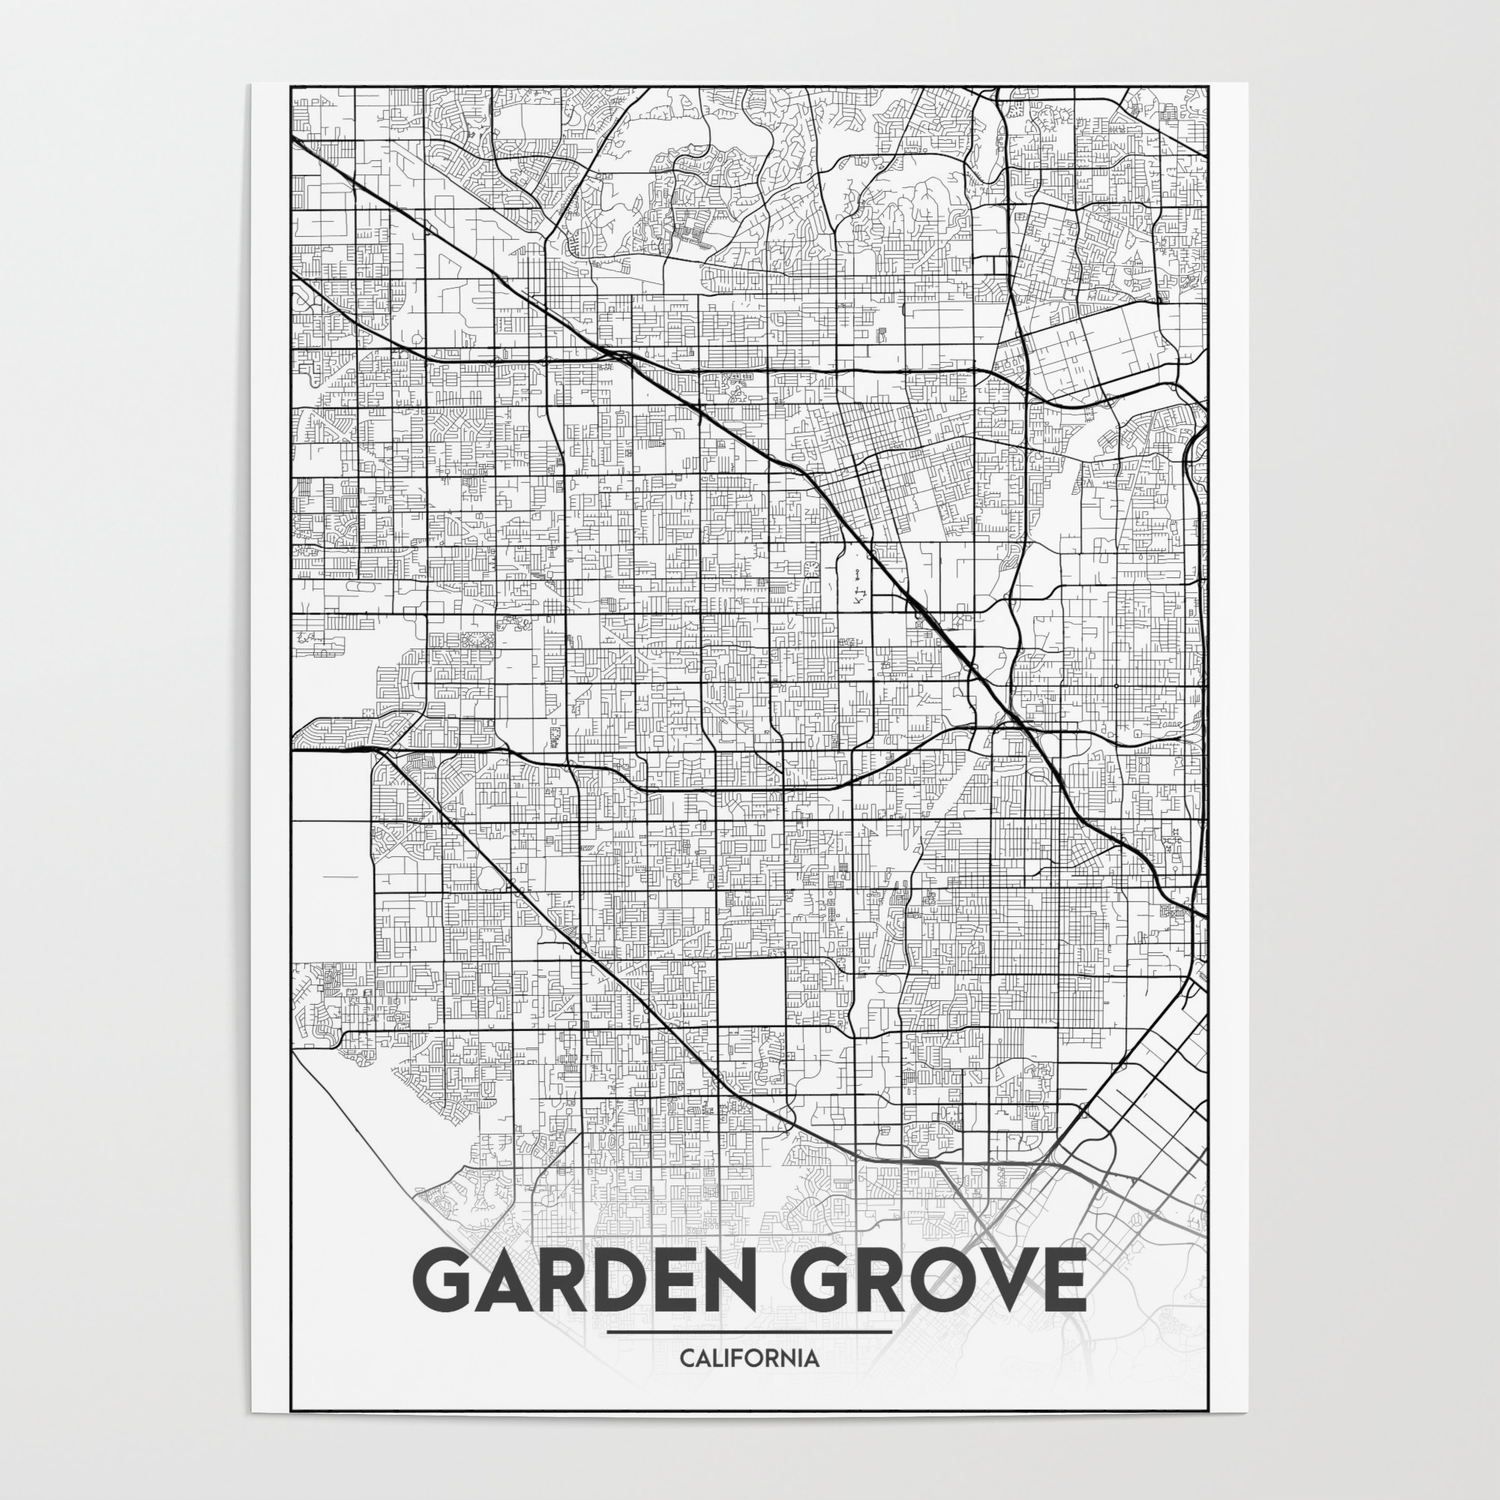 Minimal City Maps - Map Of Garden Grove, California, United States Poster  by valsymot